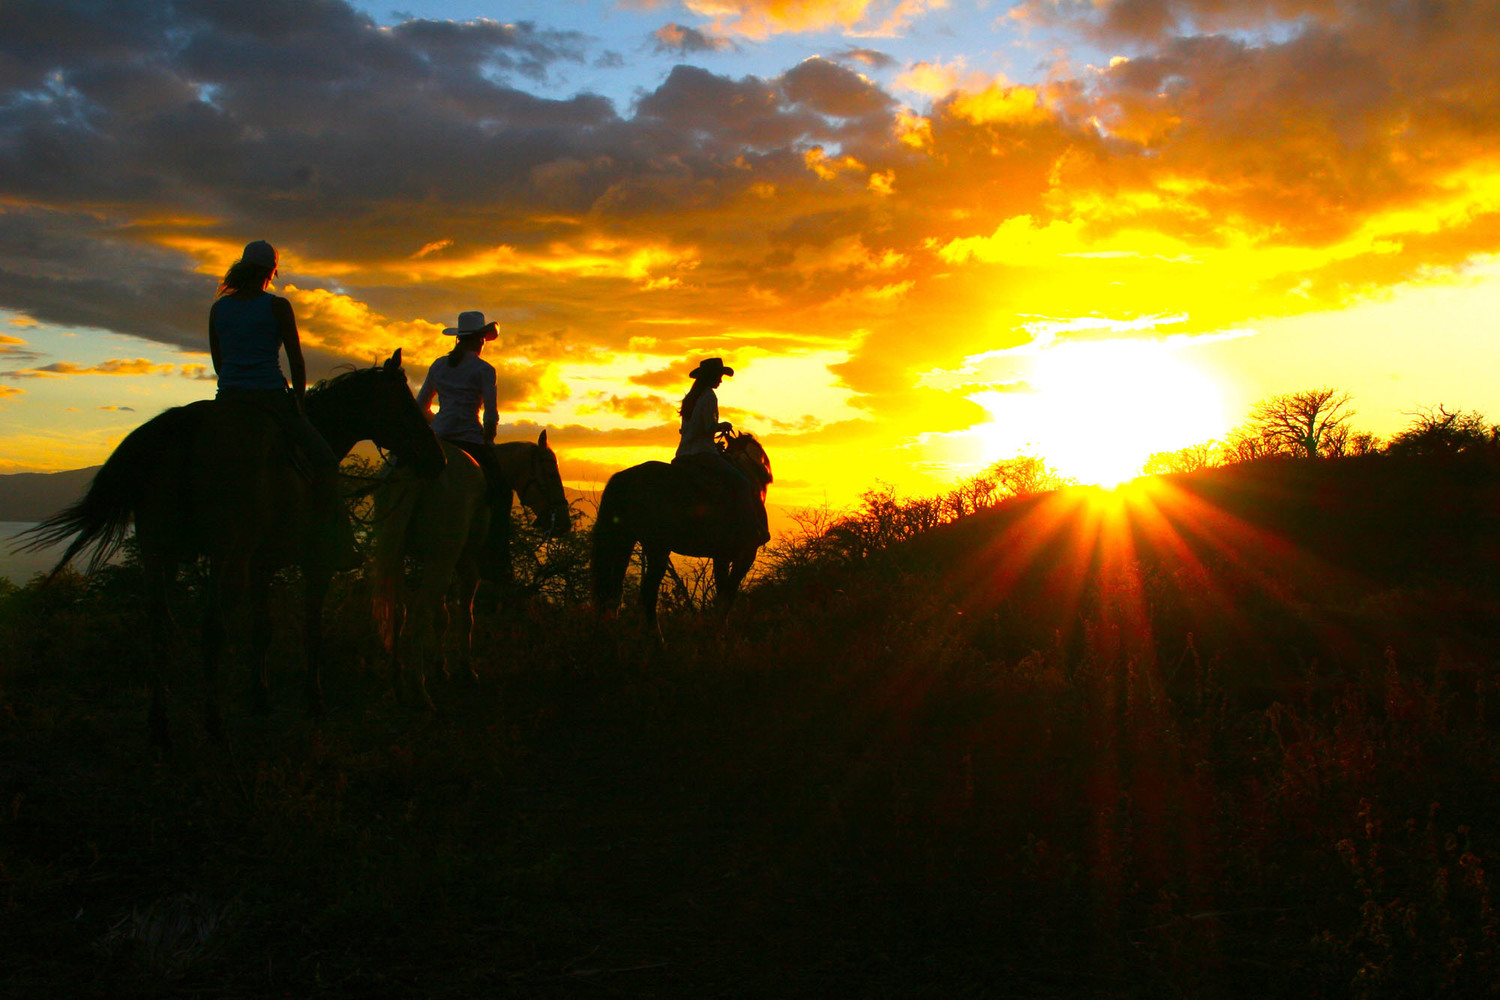 Horseback Riding Sunset